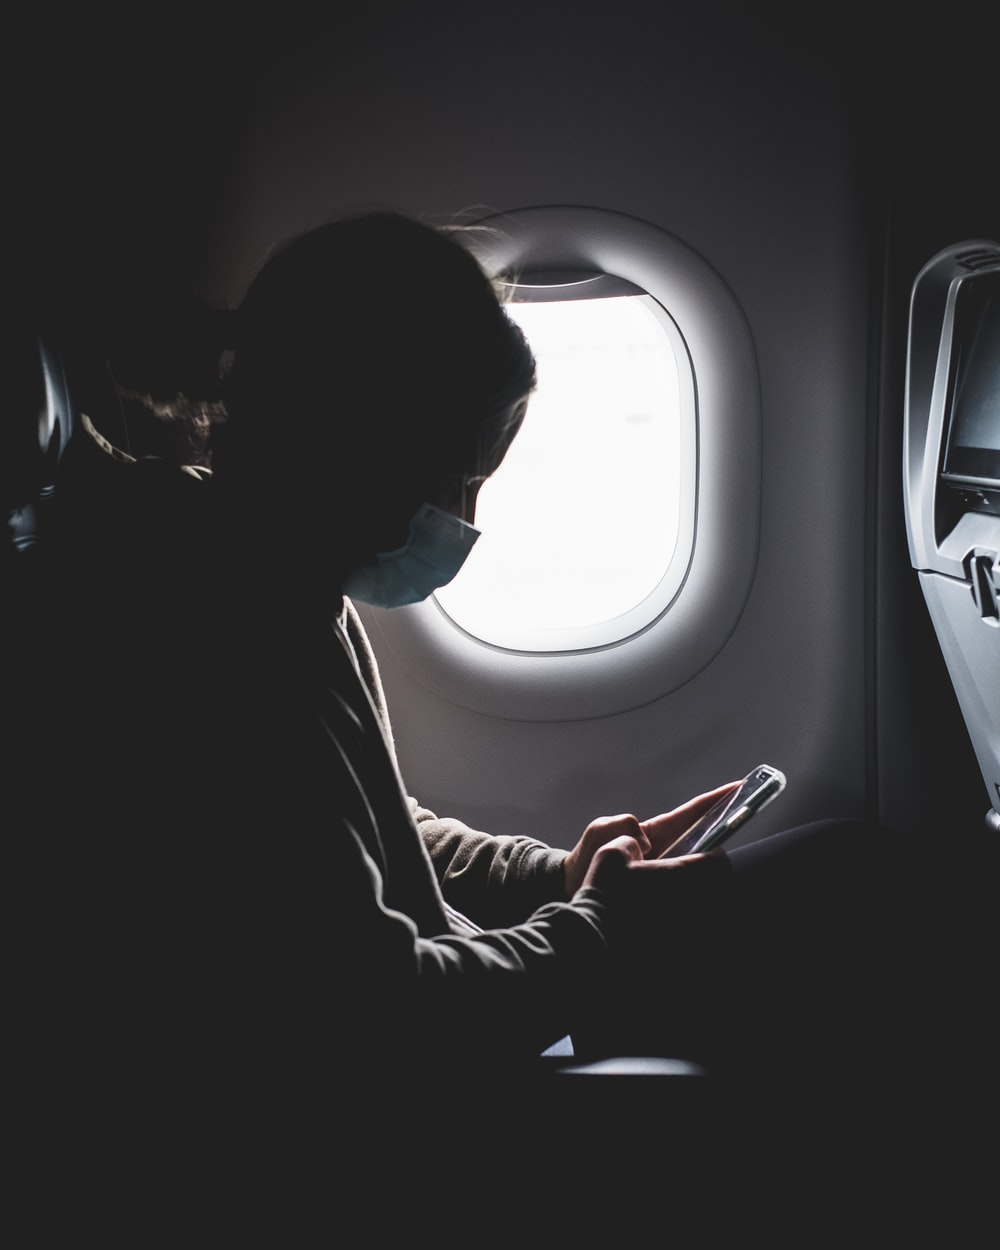 woman in black long sleeve shirt sitting on airplane seat